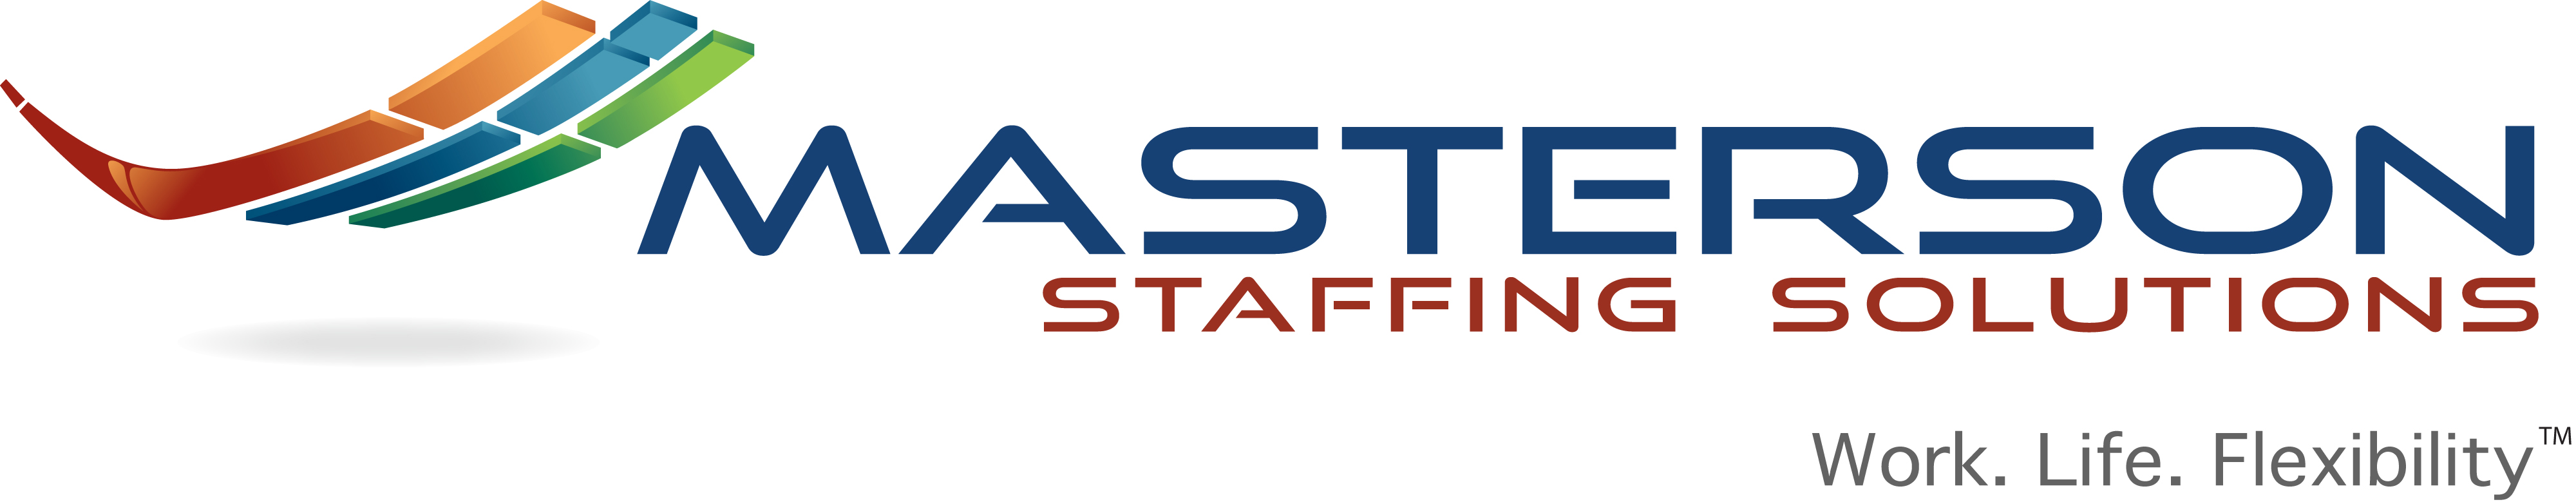 Masterson Staffing Solutions - Owatonna